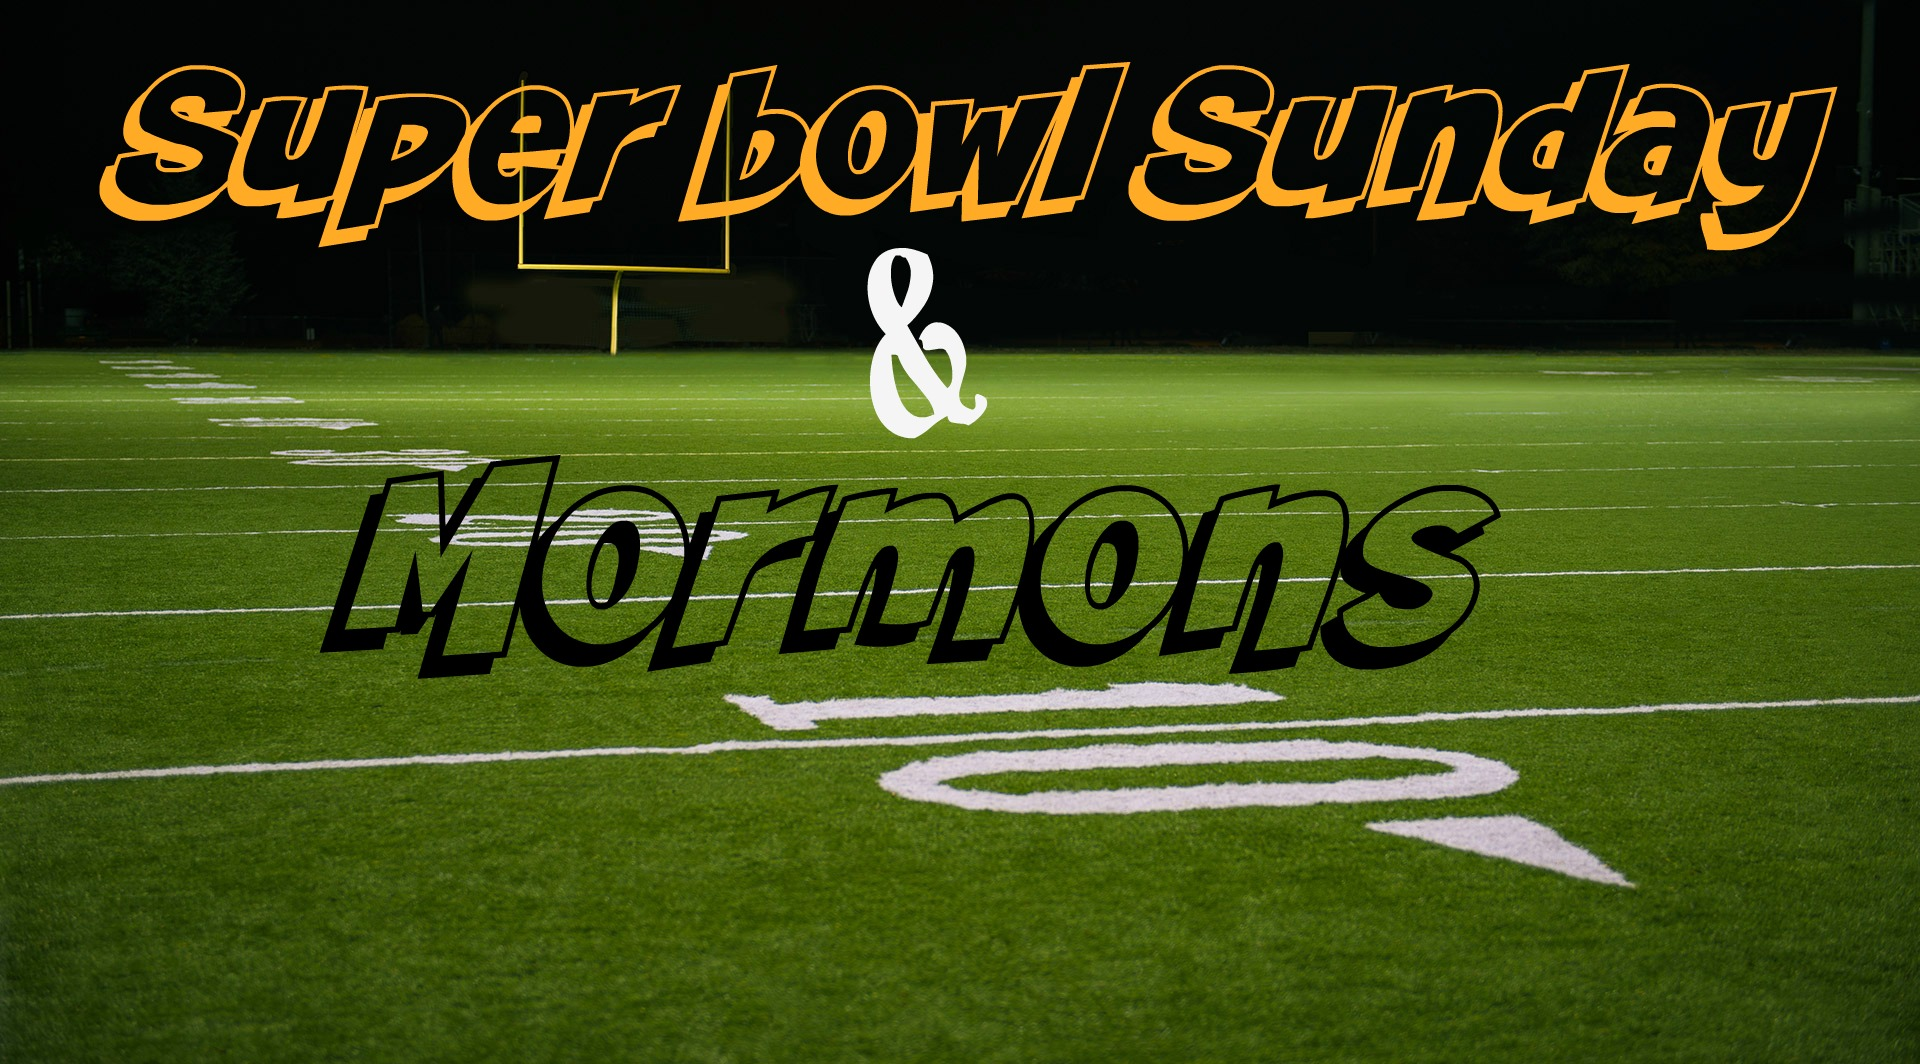 Superbowl Sunday and Mormons